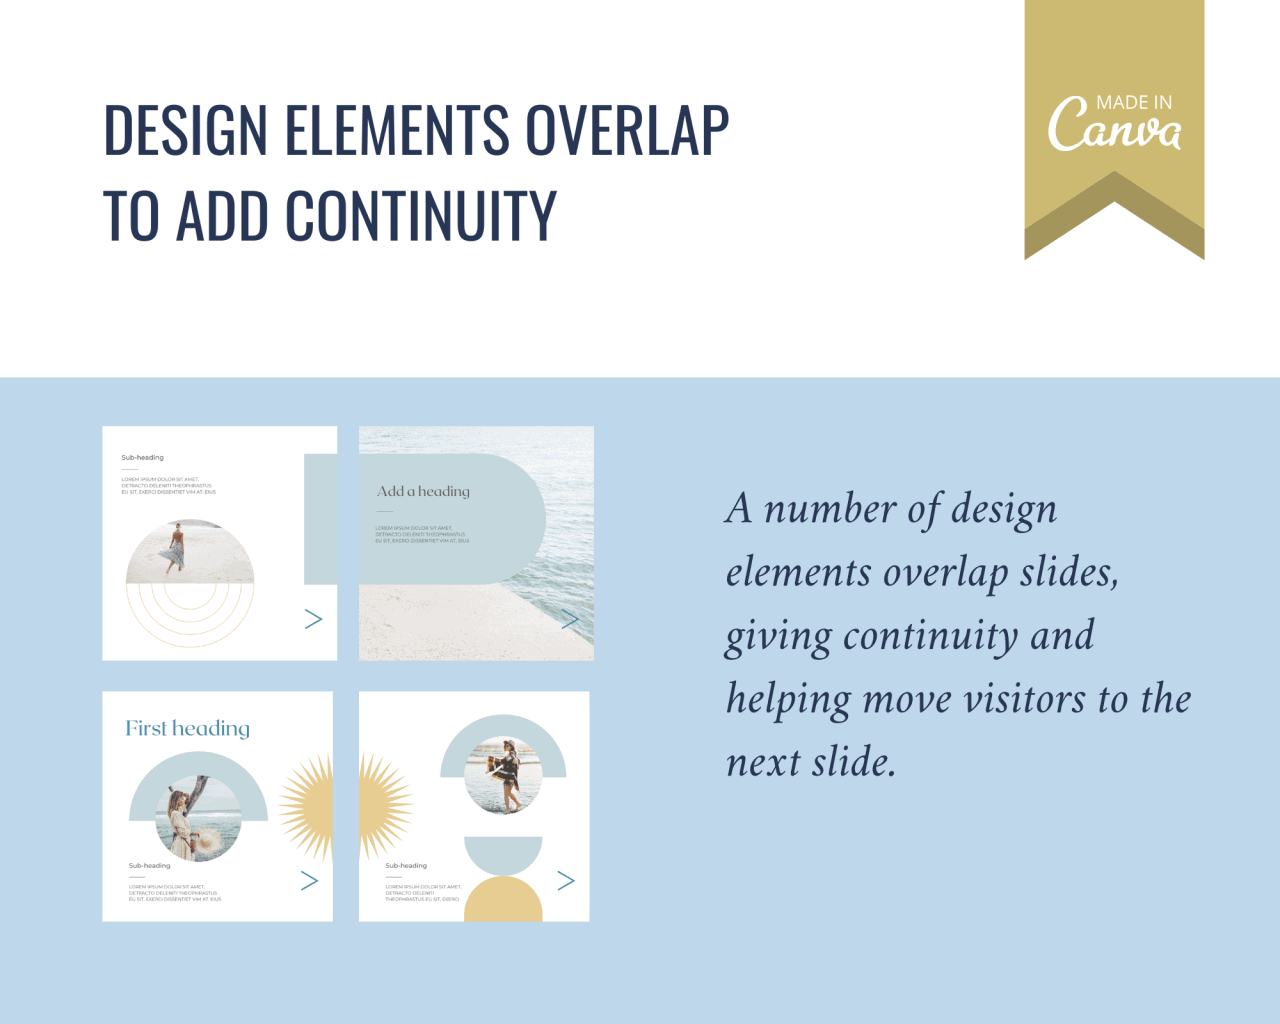 Overlapping design elements between slides add continuity in this Instagram carousel template with a blue and gold boho theme.